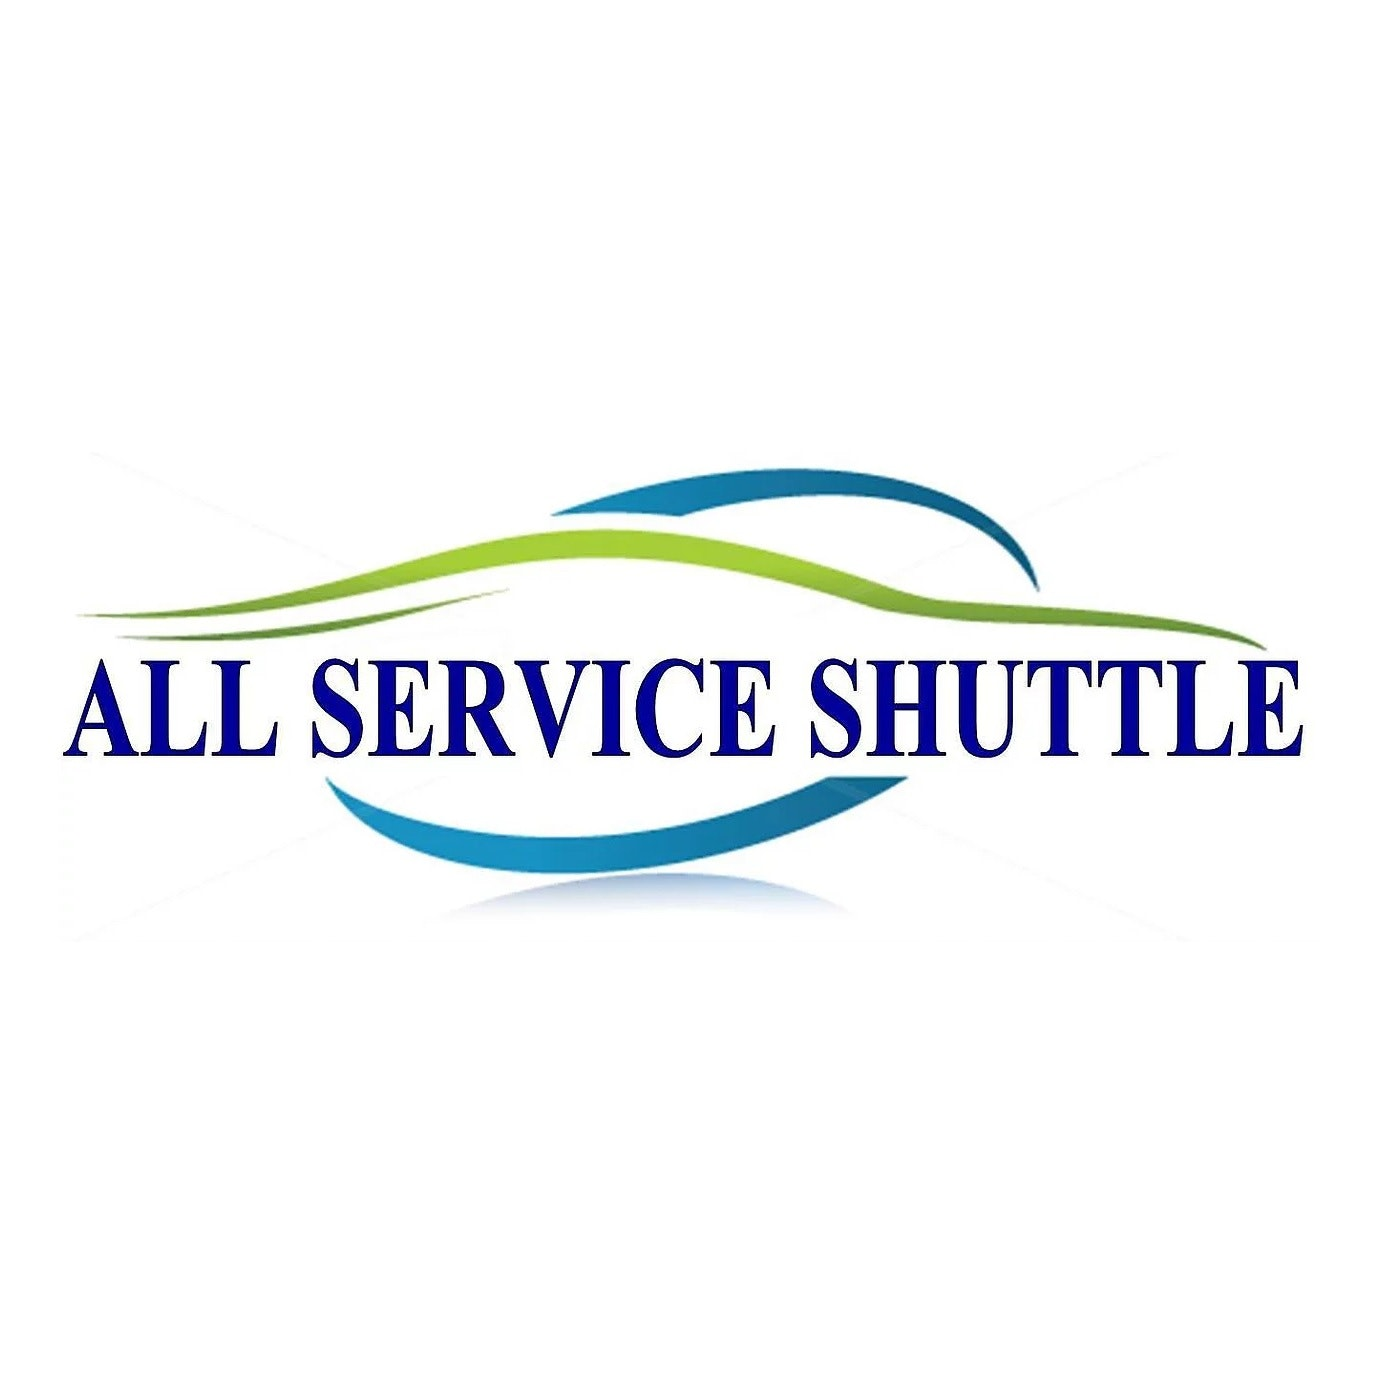 All Service Shuttle